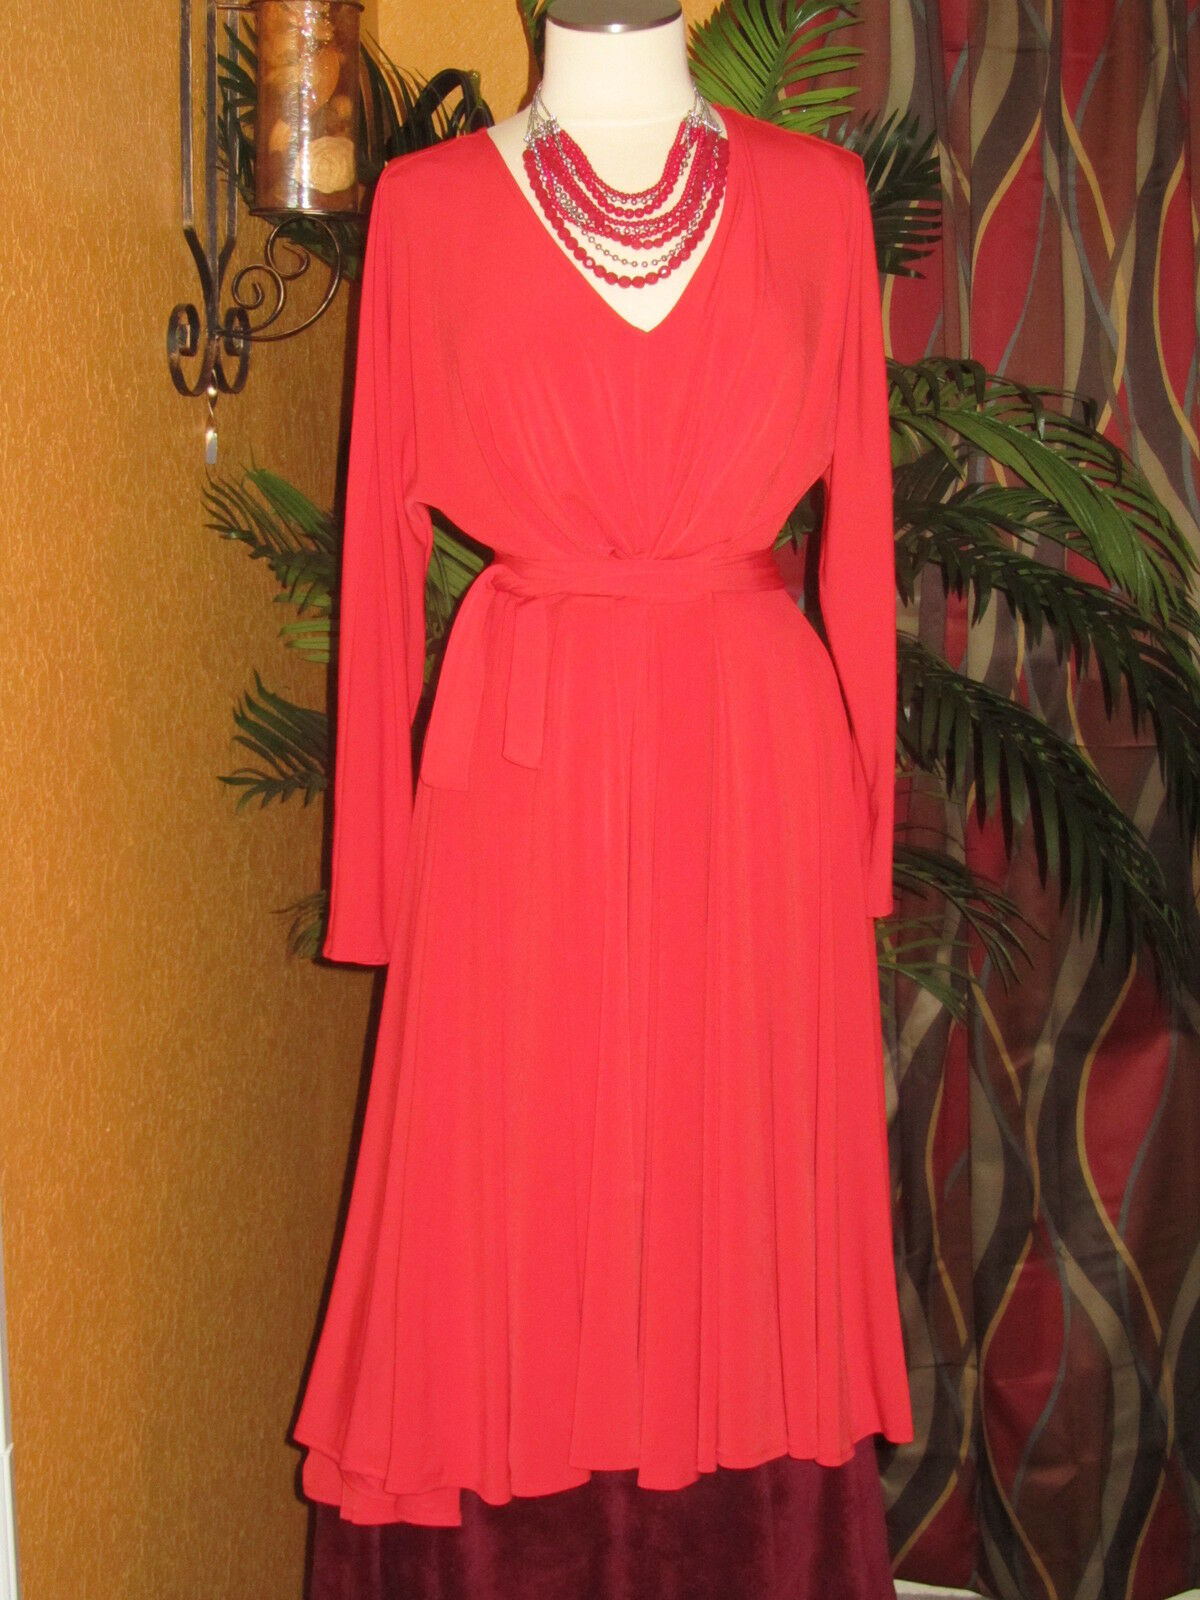 LANE BRYANT ISABEL TOLEDO NWT 14 16  EASY V red women's dress  A-line